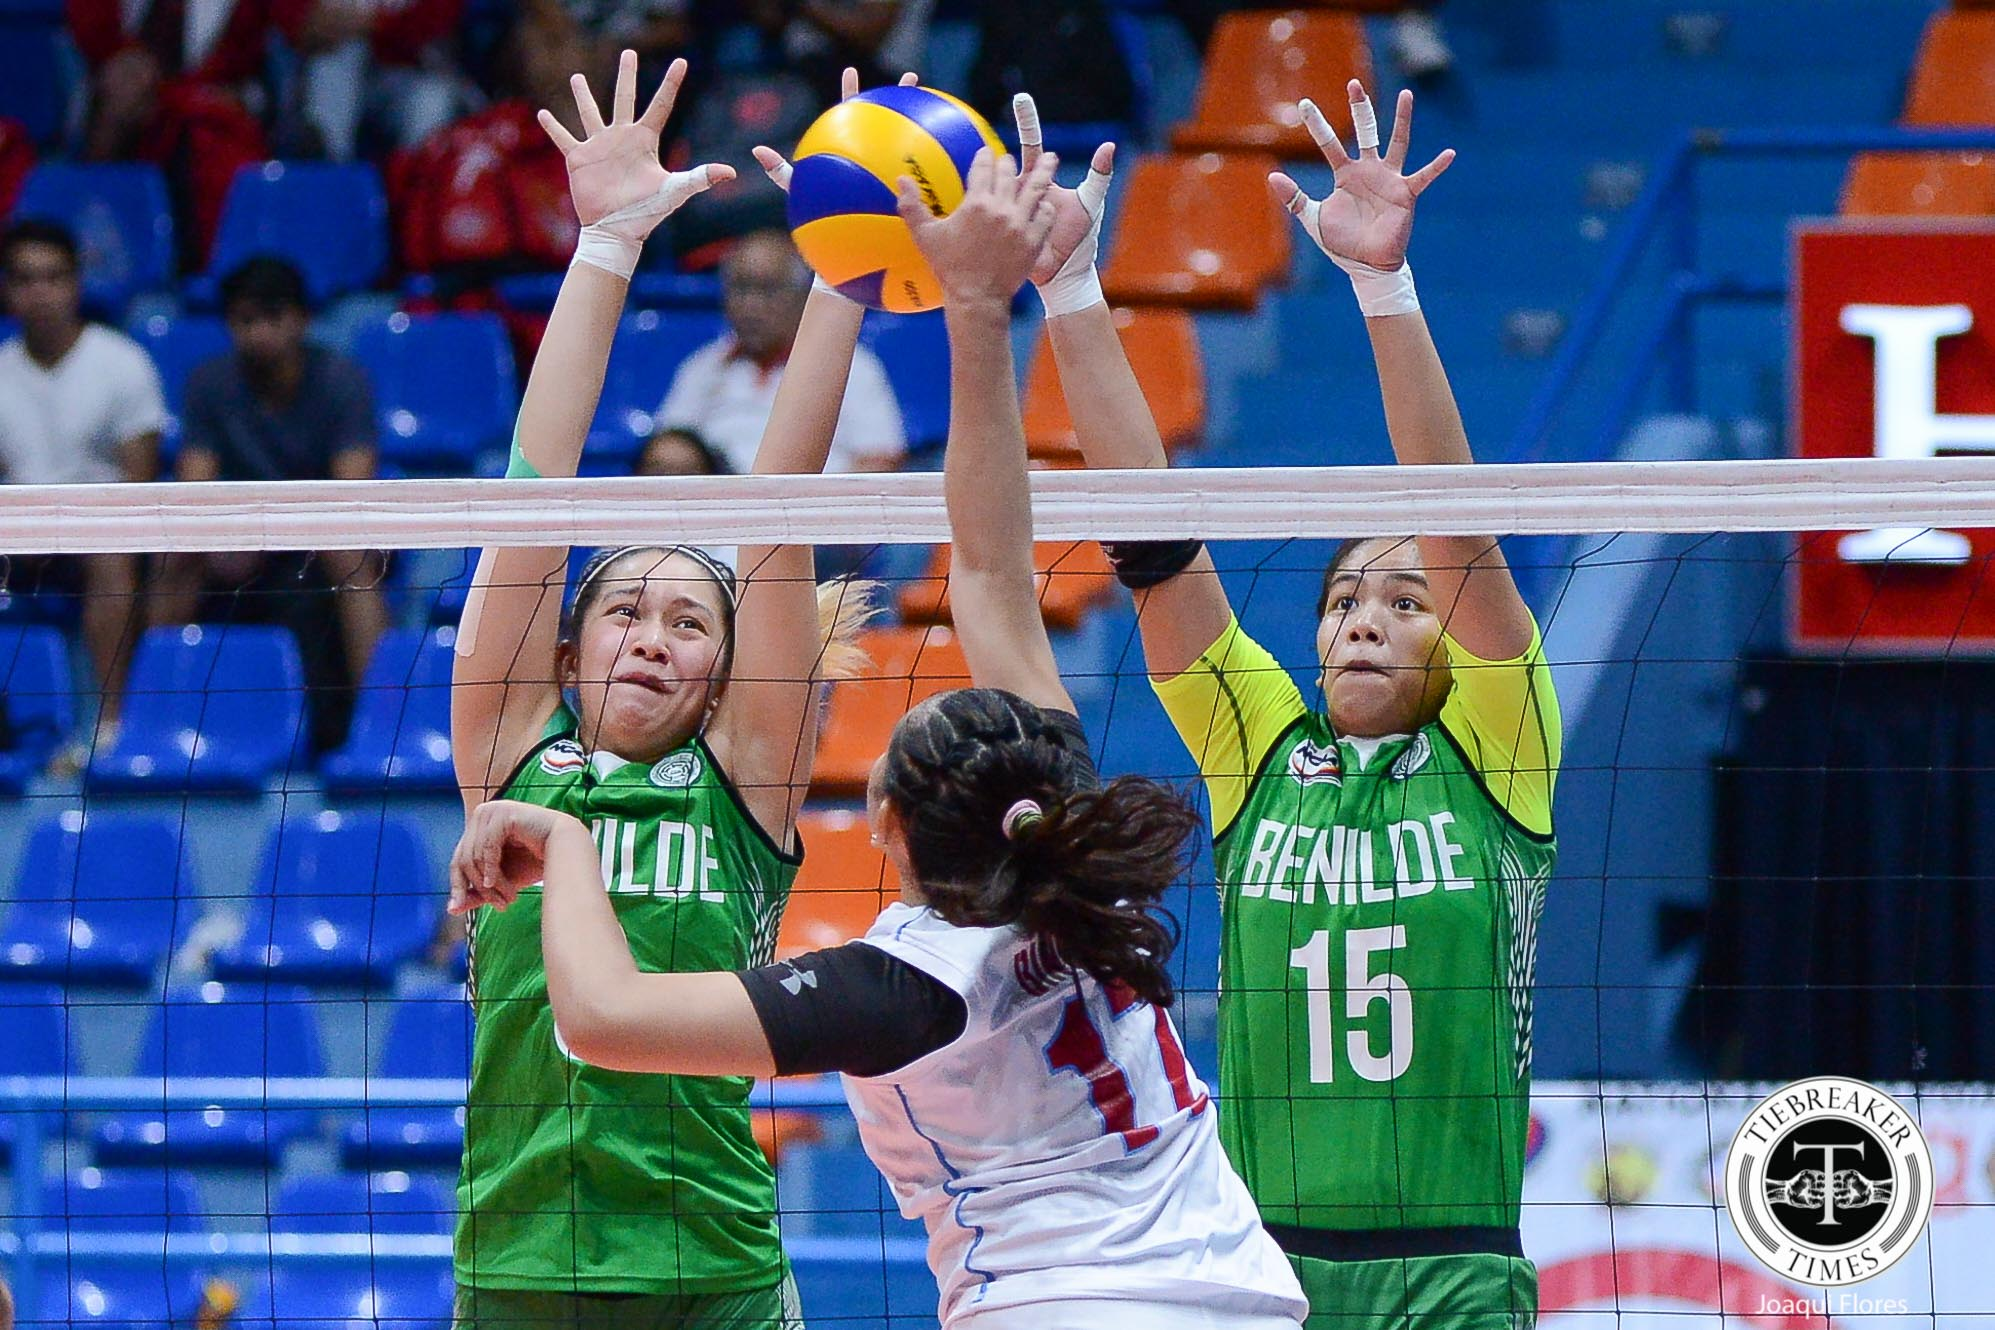 Tiebreaker Times Saint Benilde sends San Sebastian to brink of elimination CSB CSJL EAC NCAA News SSC-R Volleyball  San Sebastian Women's Volleyball Saint Benilde Women's Volleyball Roger Gorayeb Rod Palmero Rocelyn Hongria Rachel Austero NCAA Season 94 Women's Volleyball NCAA Season 94 Melanie Torres Maryrhose Dapol Lyceum Women's Volleyball Klarissa Abriam Jewel Lai Jerry Yee Jaylene Lumbo Emil Lontoc EAC Women's Volleyball Bien Juanillo